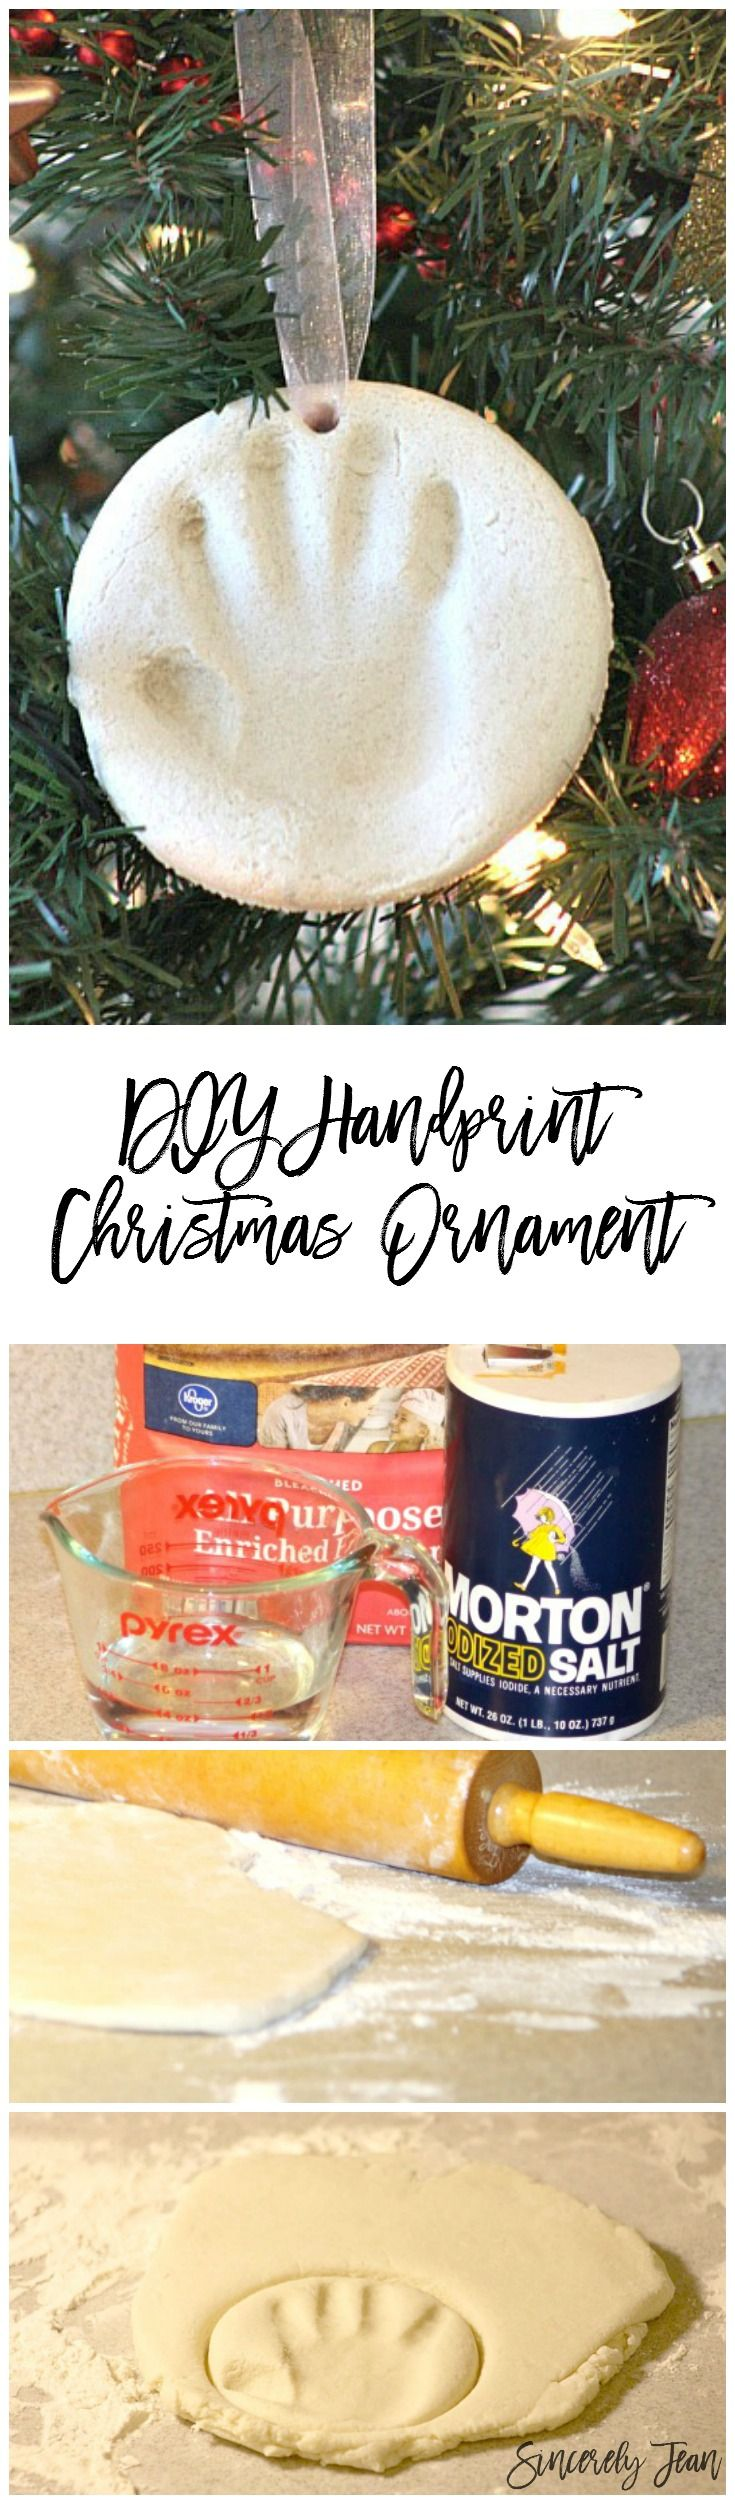 DIY Handprint Christmas Ornament - Simple Christmas craft for children! Make memories in an ornament! | www.SincerelyJean.com